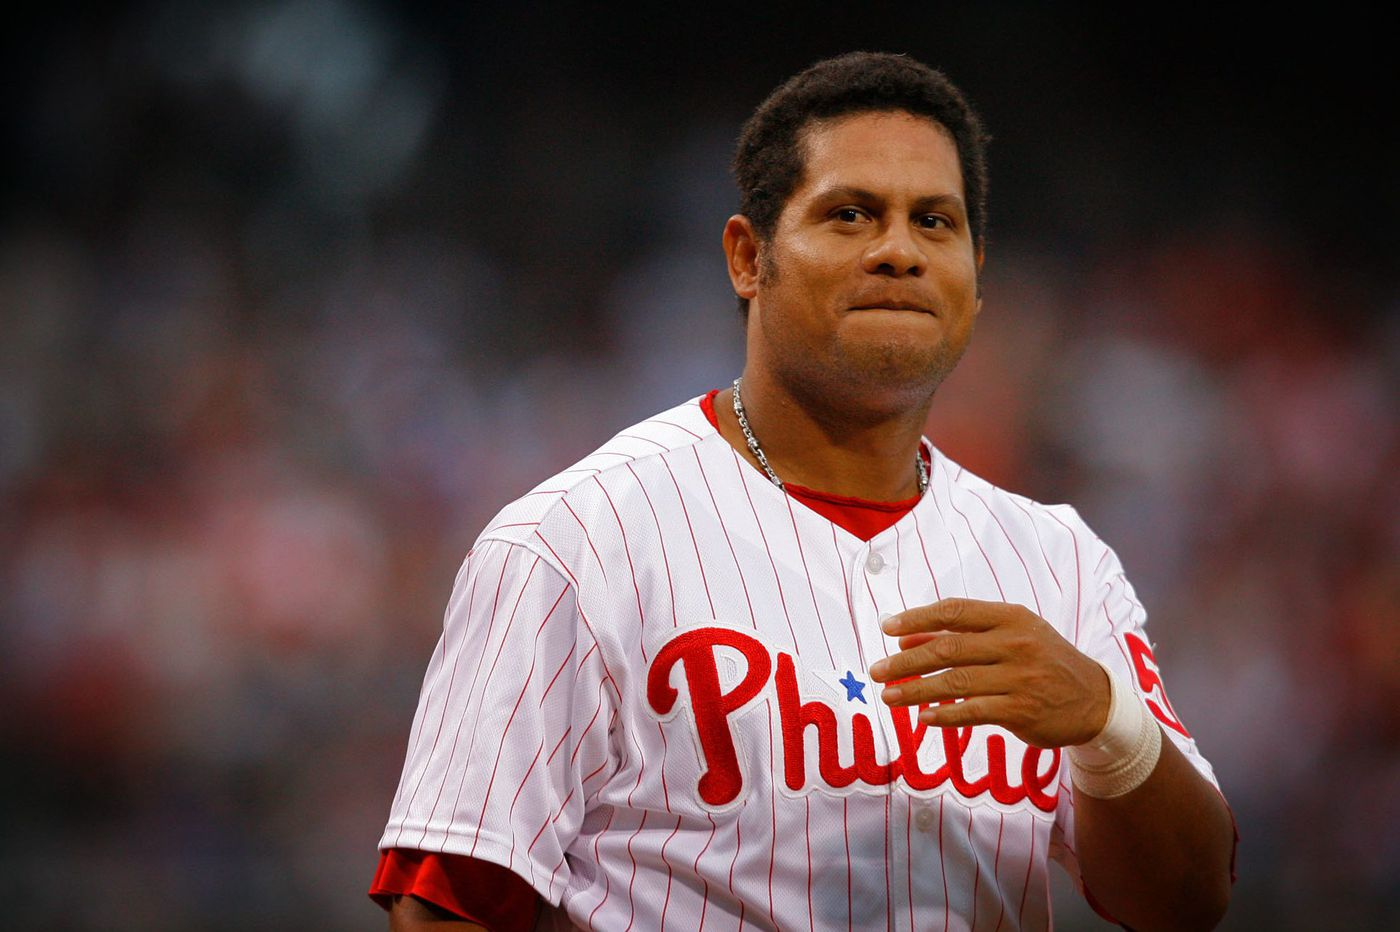 Bobby Abreu leads Phillies' list of most notable Latin American players | Bob Brookover